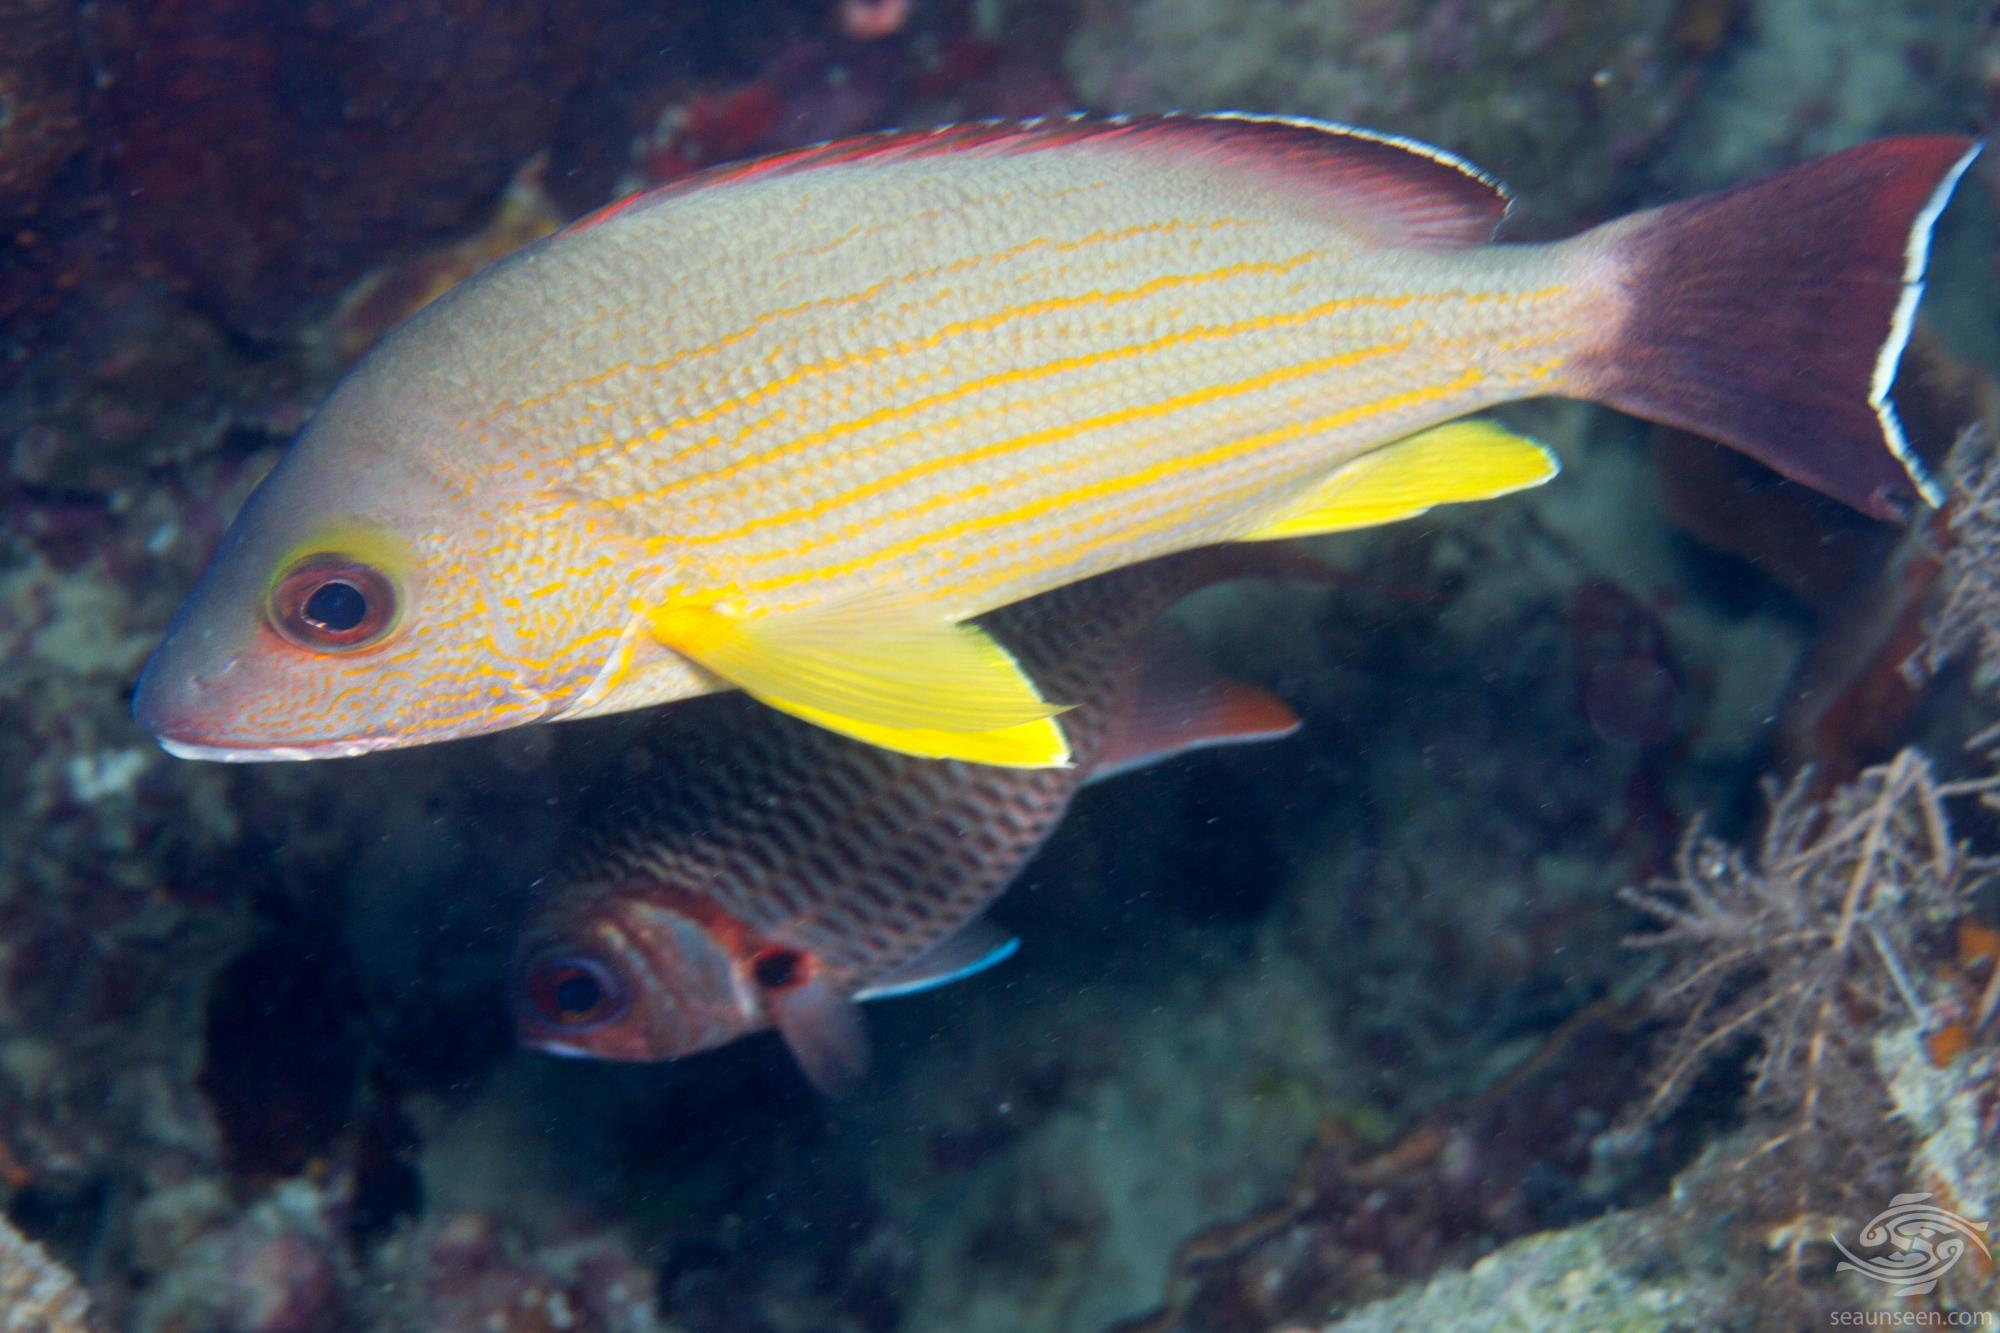 Blacktail Snapper (Lutjanus fulvus) is also known as the Flametail Snapper, Redmargined Seaperch, Taiva, Waigeu Snapper and Yellowmargined Sea Perch.